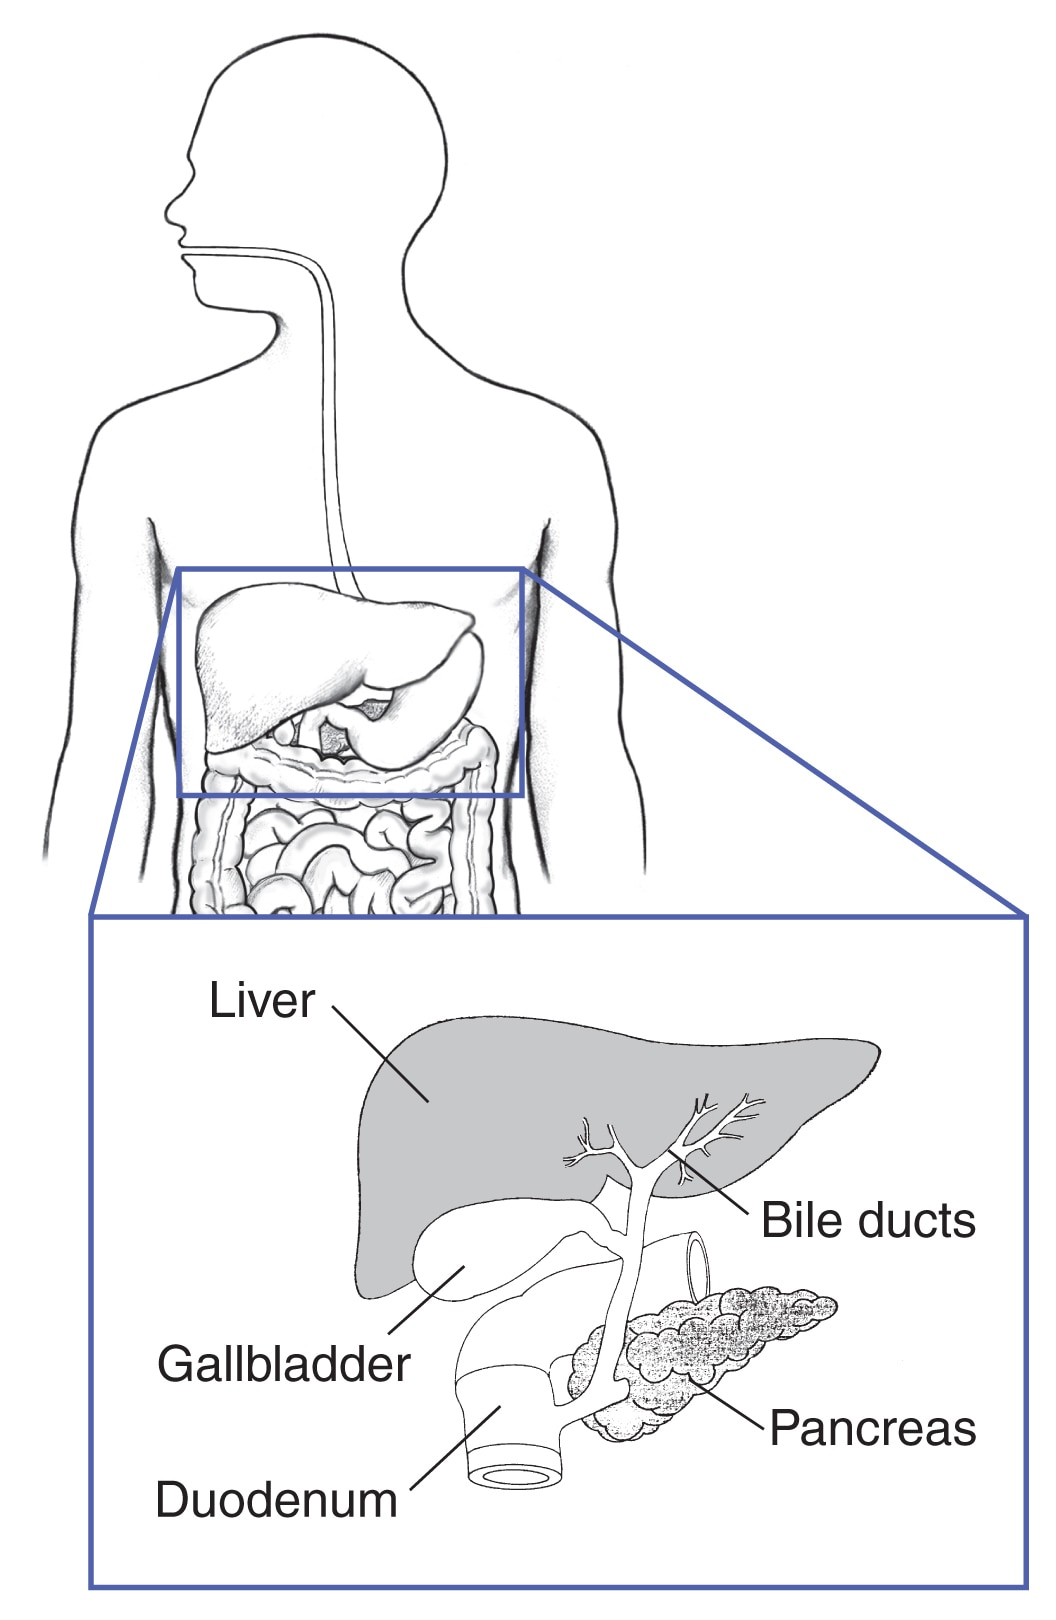 Human torso with an inset showing the liver, bile ducts, gallbladder, pancreas, and duodenum.